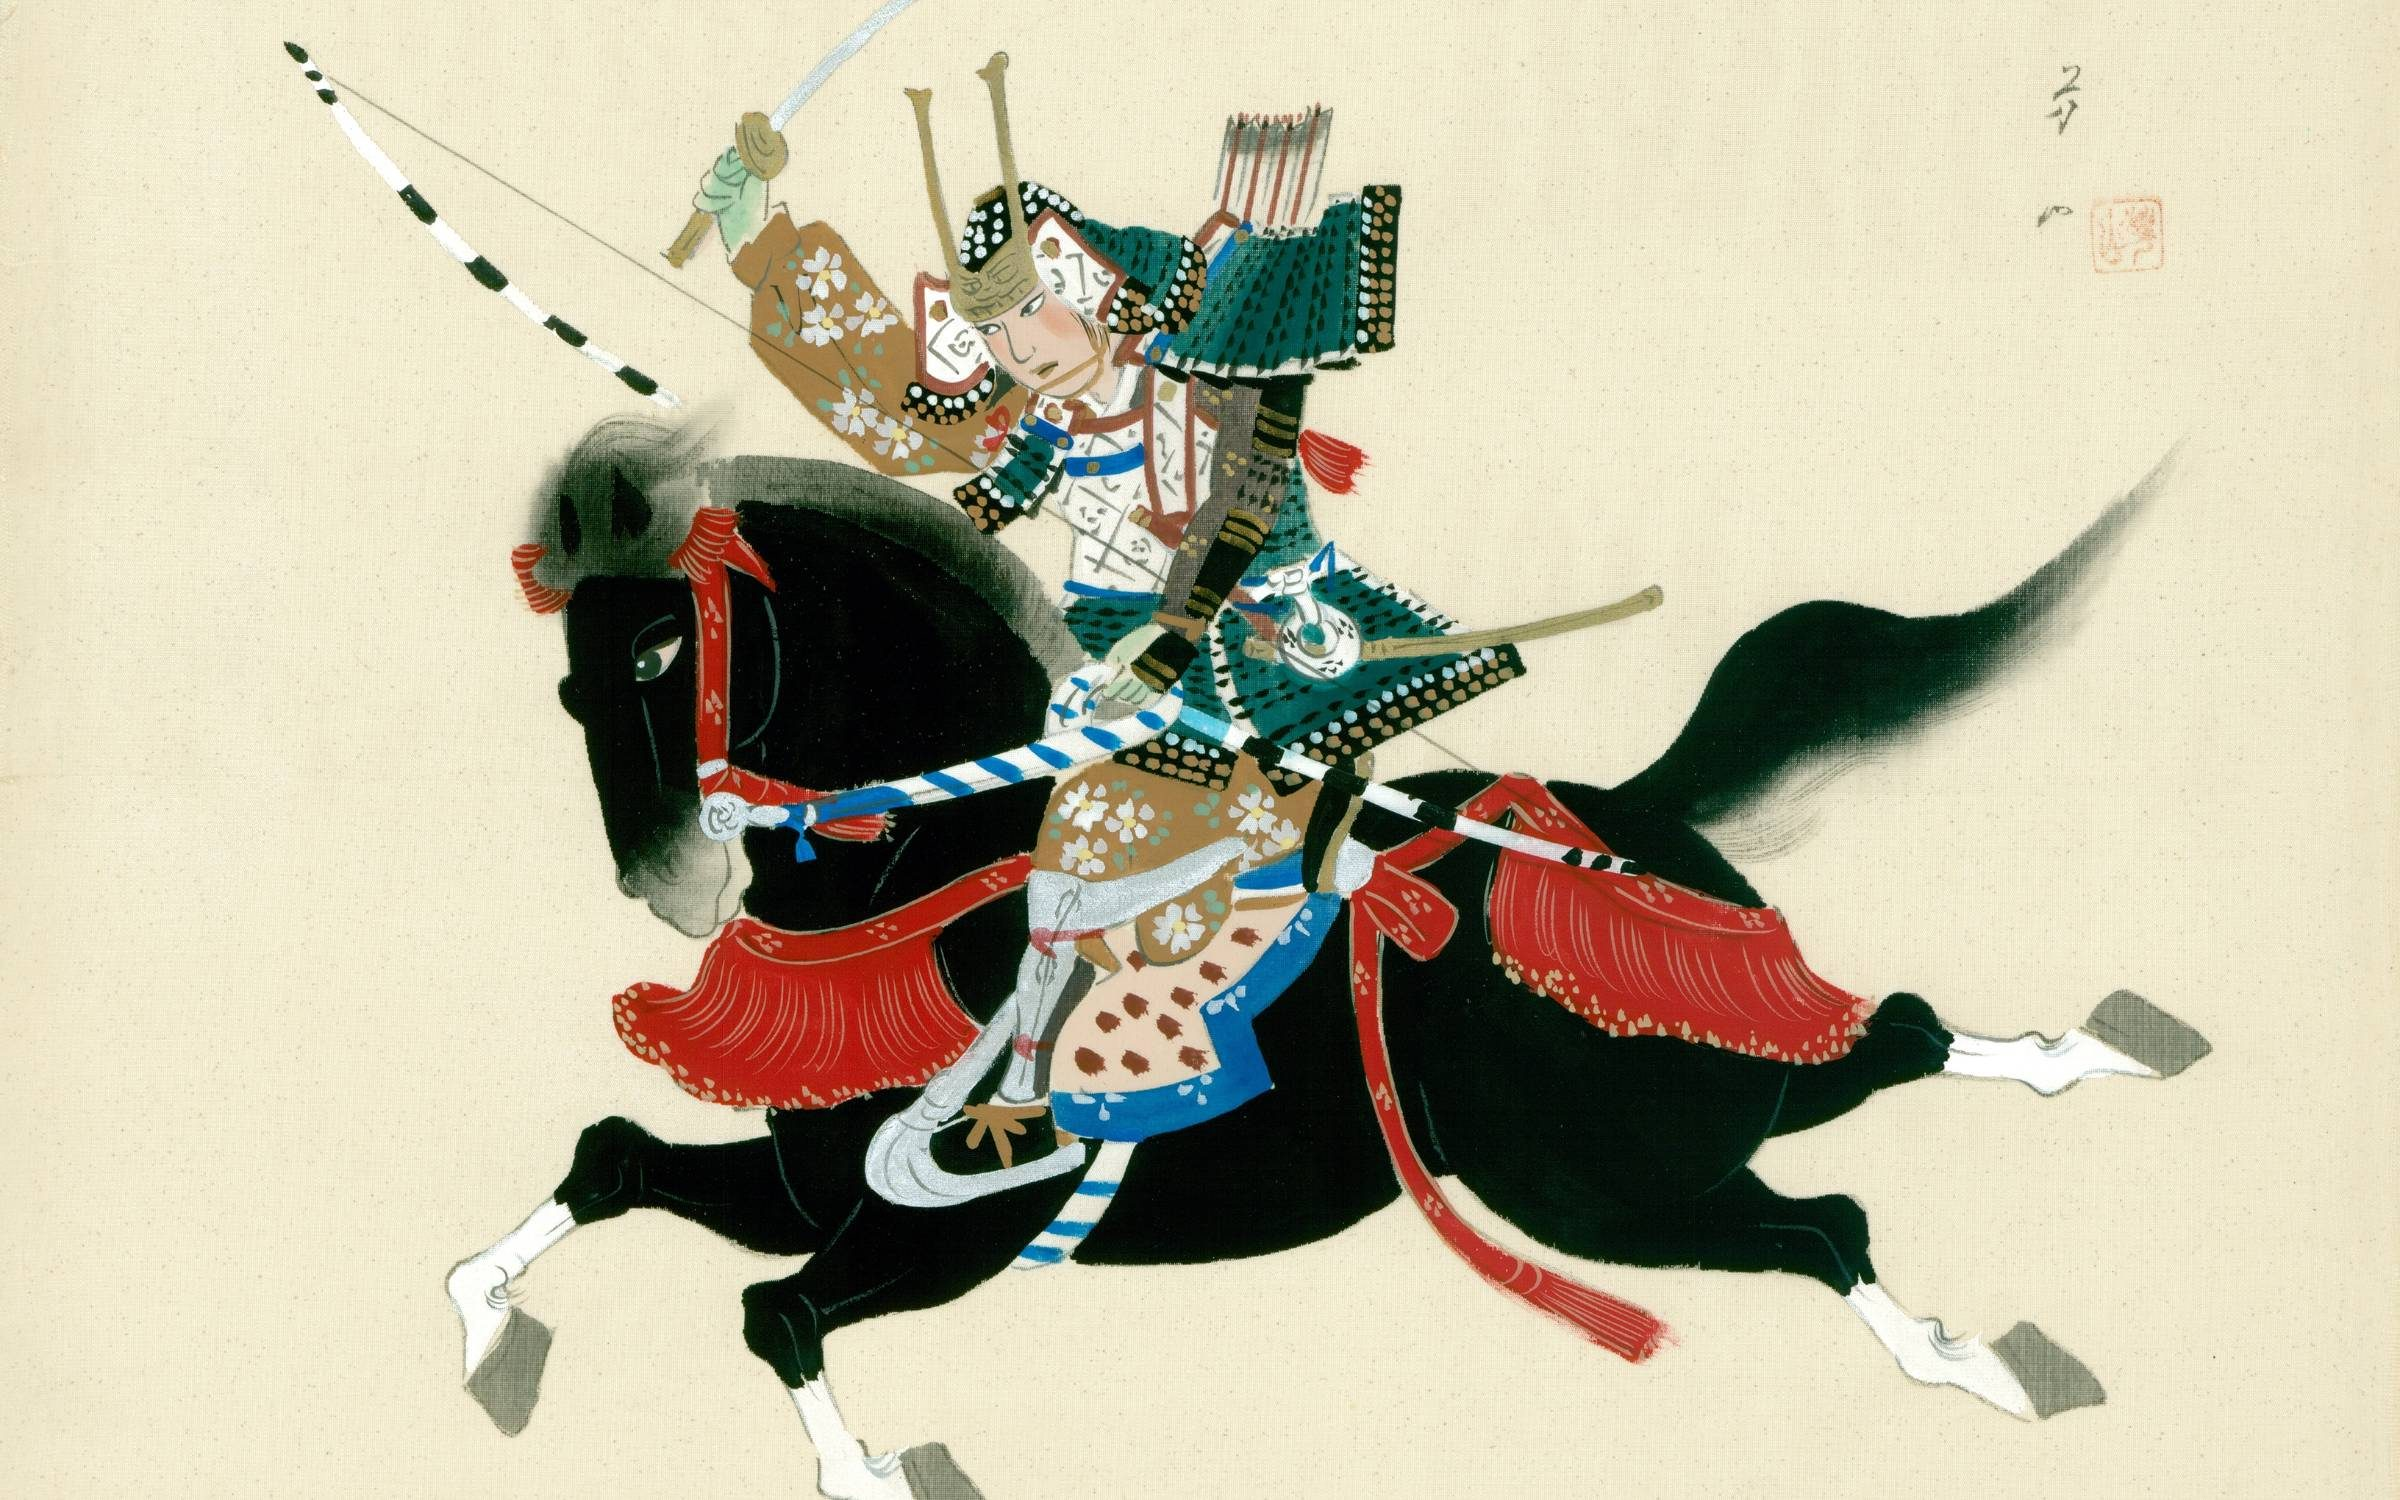 Samurai Warrior riding a horse. A Japanese painting on silk, in a traditional Japanese style. (Photo by The Print Collector/Print Collector/Getty Images)